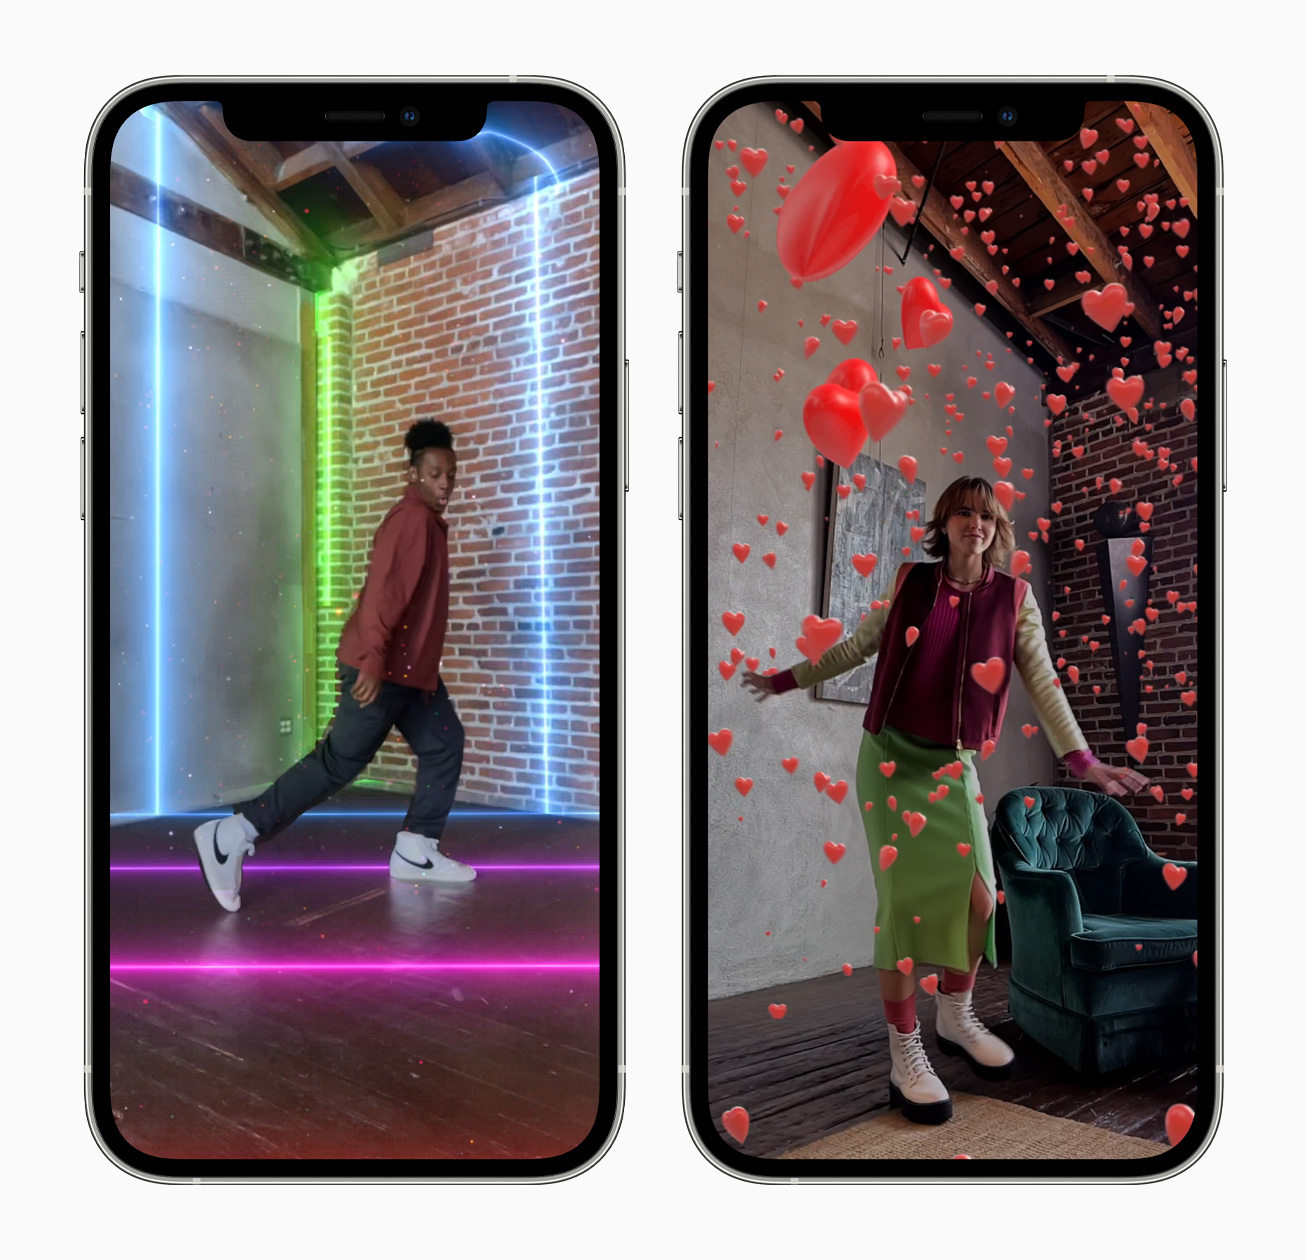 Clips App Version 3.1 Brings AR Spaces to iPhone 12 Pro and iPad Pro Models